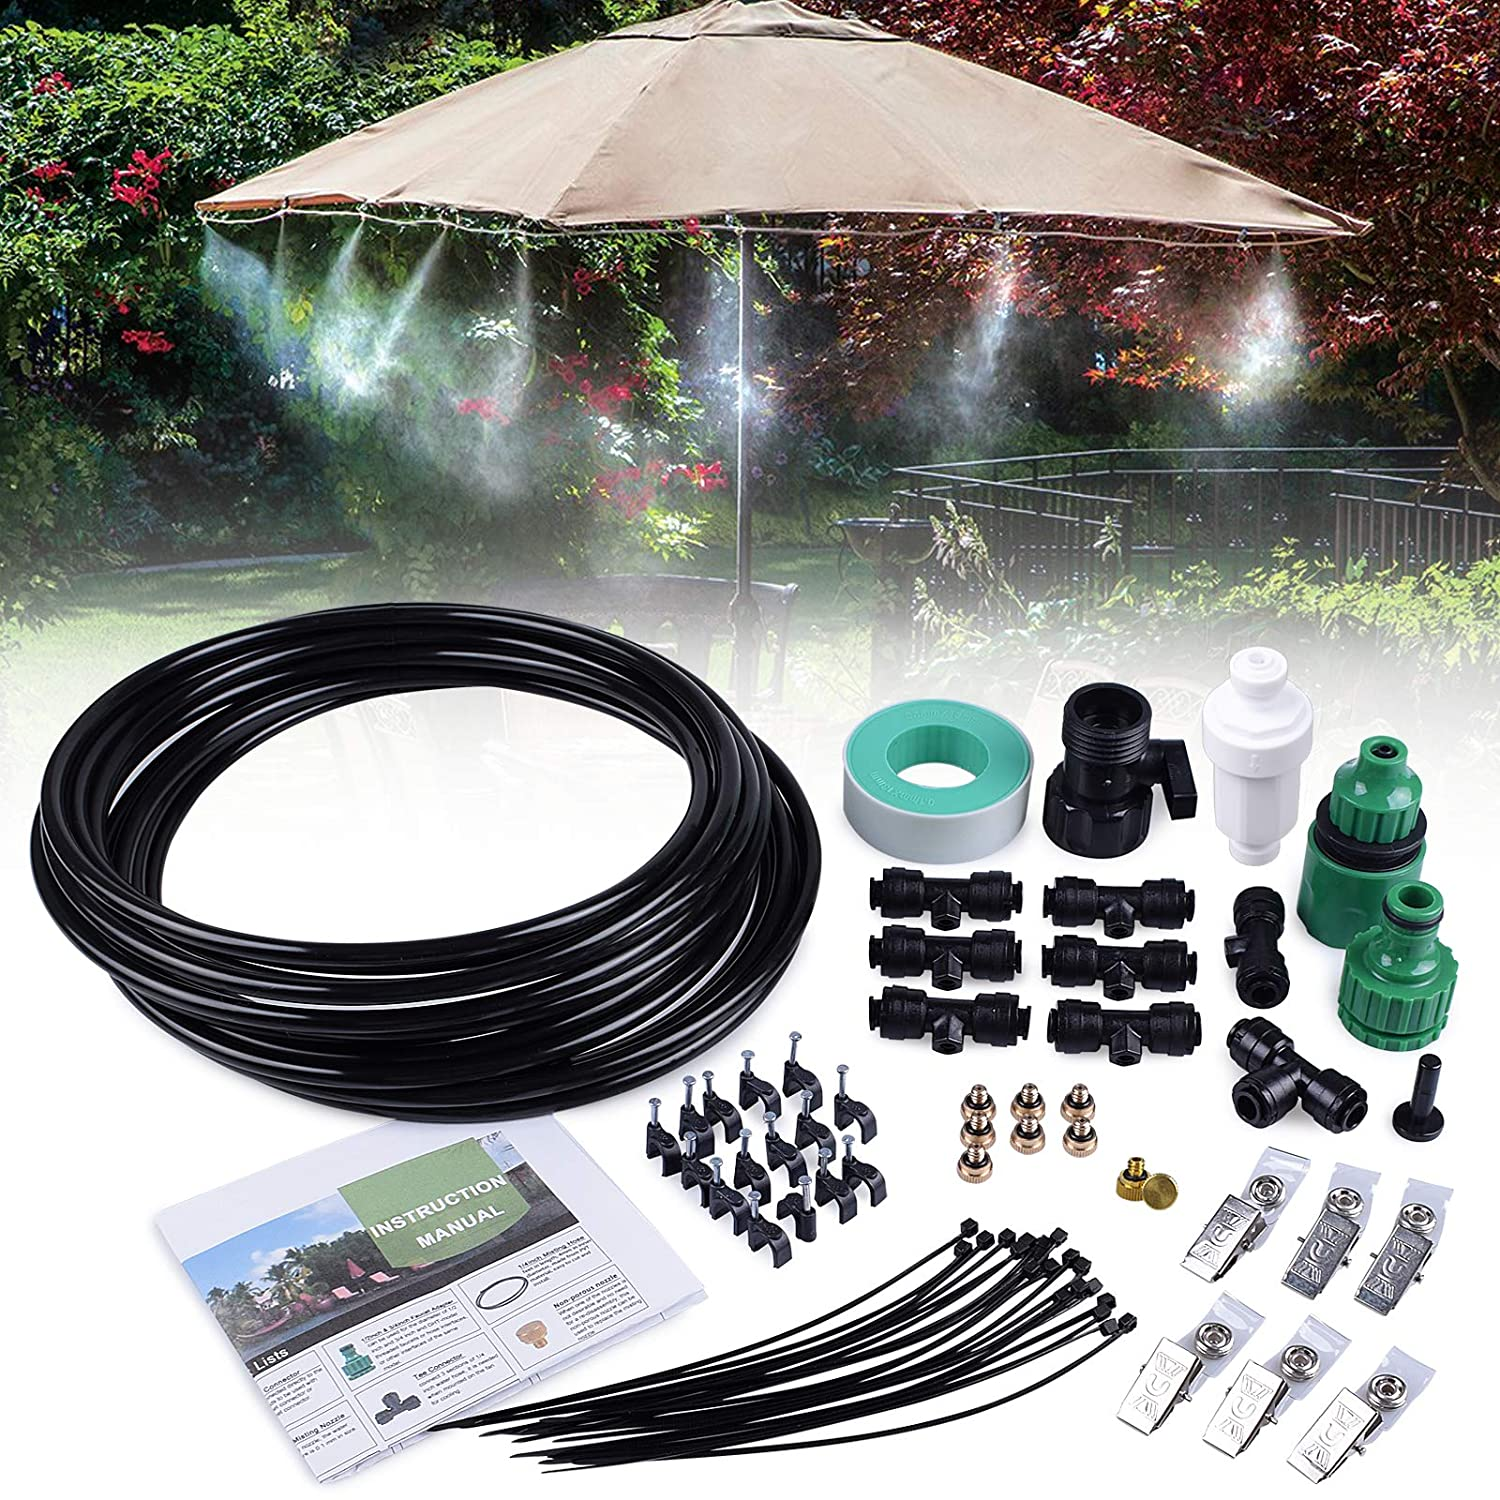 MIXC 26.2FT Outdoor Mist Cooling System Fan Misting Kit Animal Plants Swimming Pool Cooler with 1/4inch Tube Hose Pipe 7 Brass Metal Nozzles Jets Misters for Patio Garden Home Irrigation